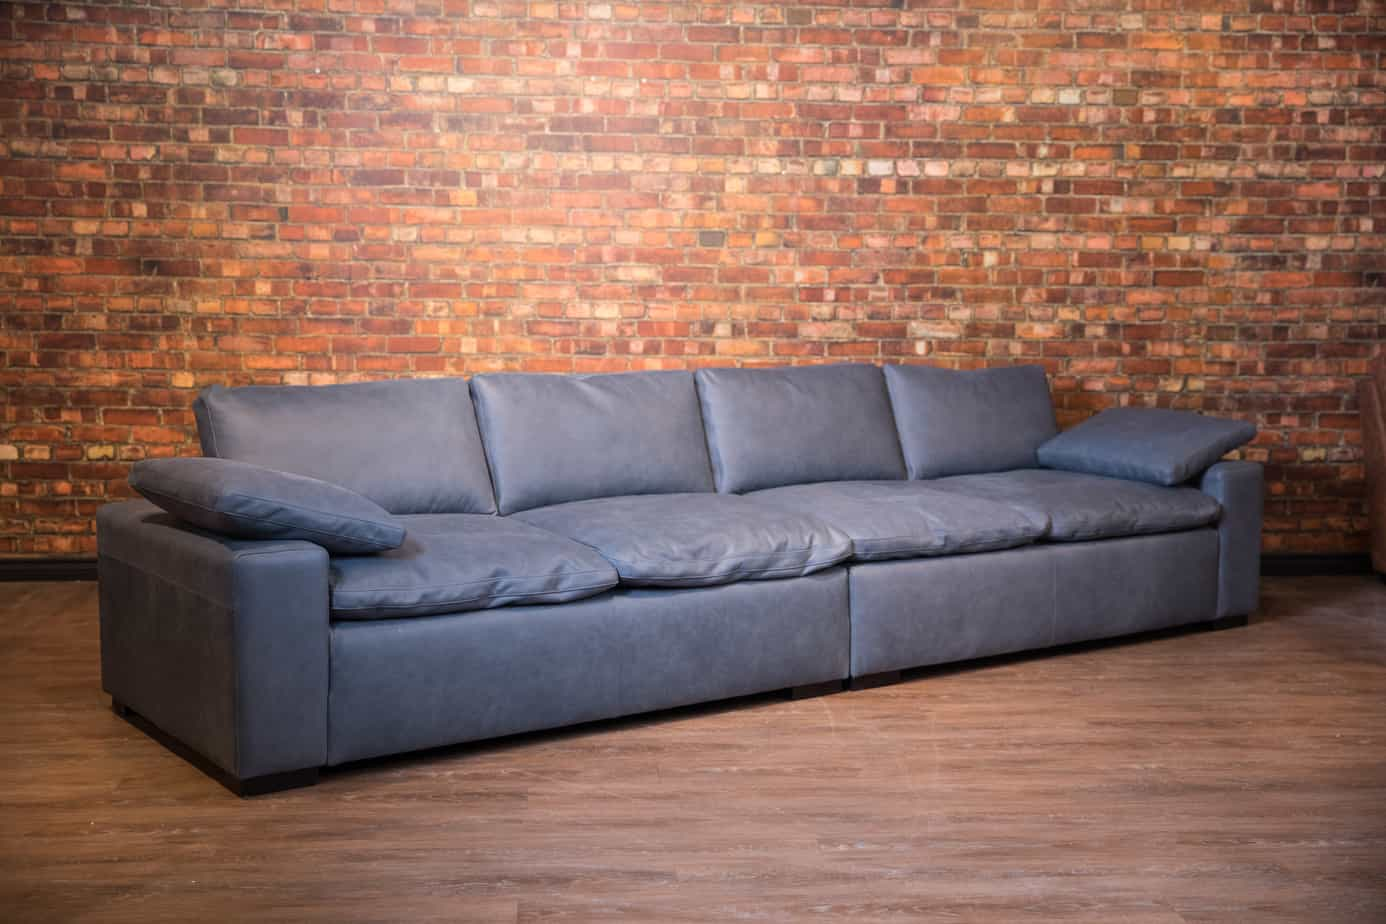 Dream Cloud Series Canada S Boss Leather Sofas And Furniture